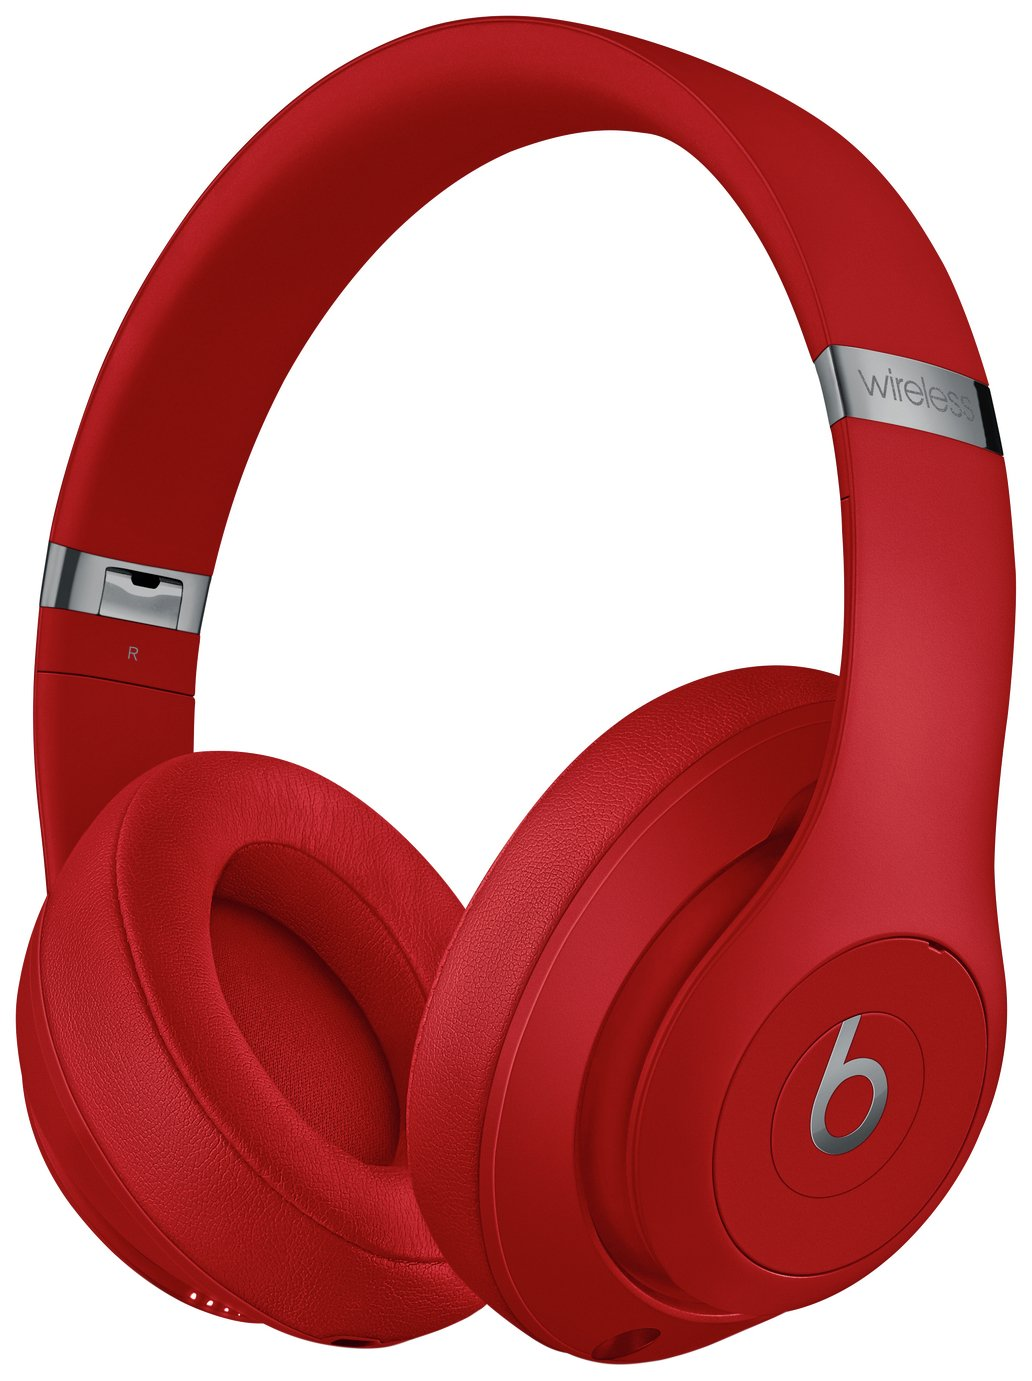 Image of Beats by Dre Studio 3 Wireless Over-Ear Headphones - Red